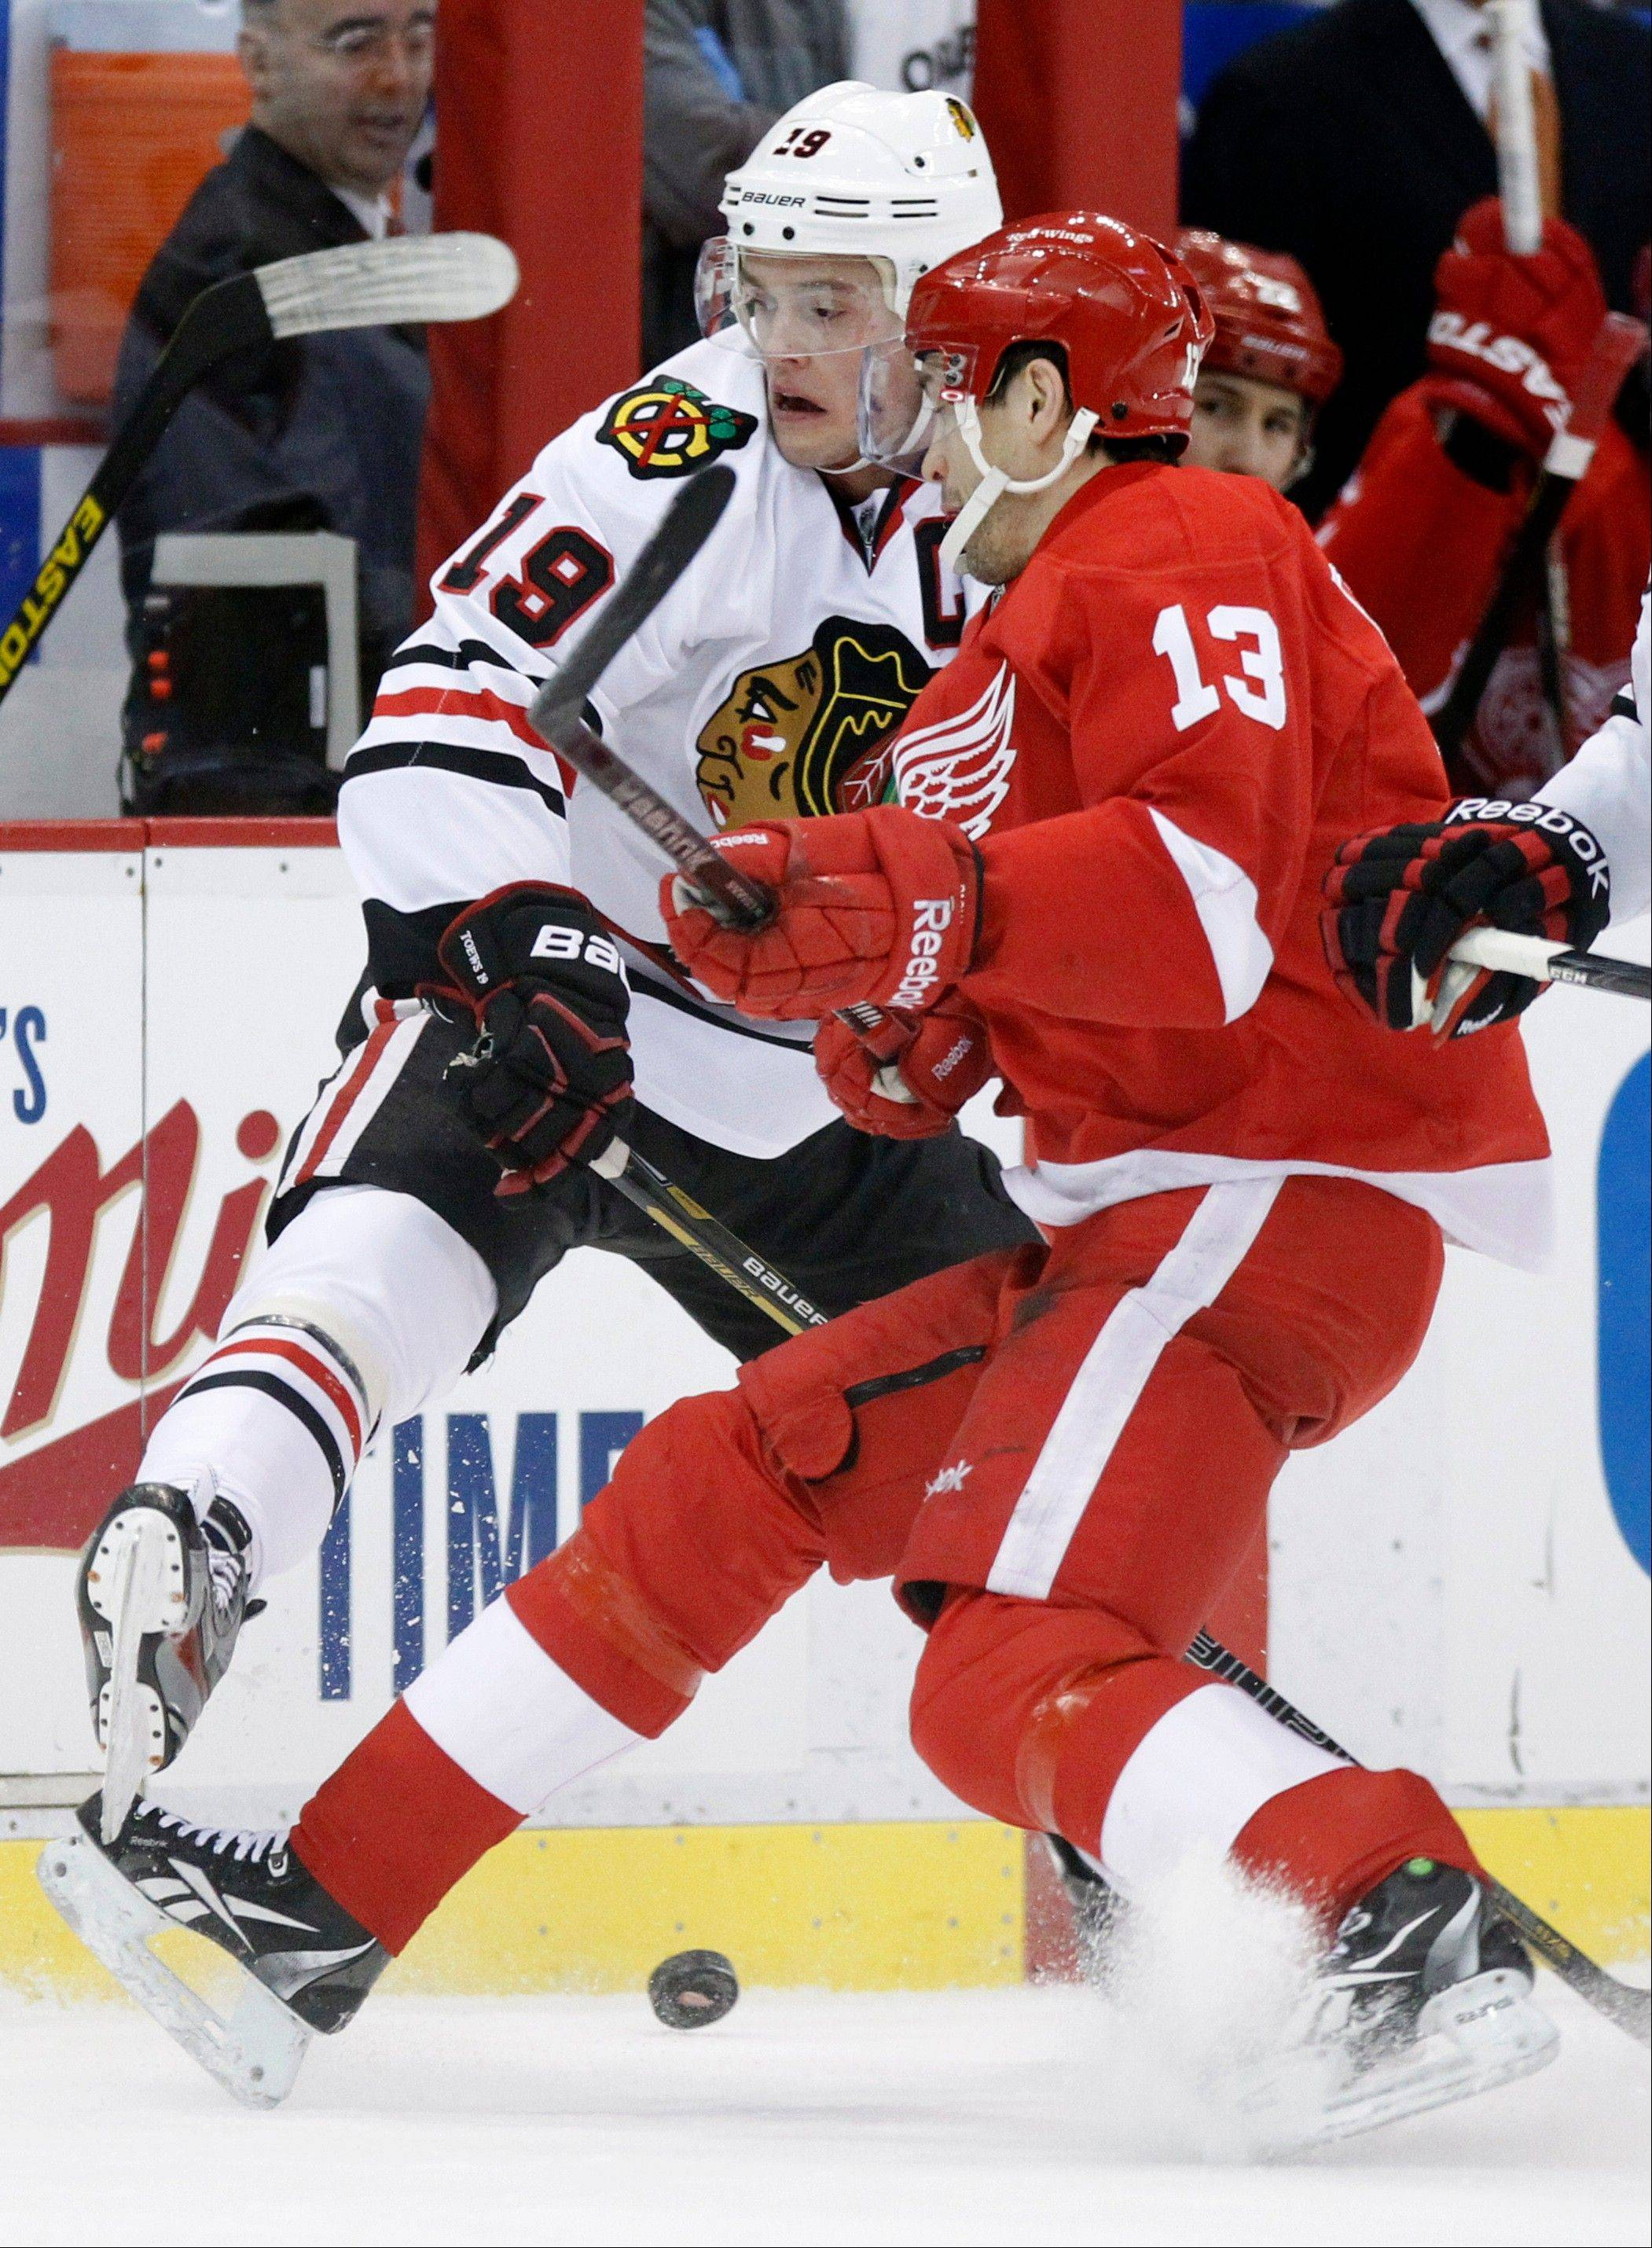 The Detroit Red Wings and Chicago Blackhawks won't play as often under the NHL's realignment plan, but the Hawks will get to host every team in the league, which hasn't been the case since the 2004 lockout.